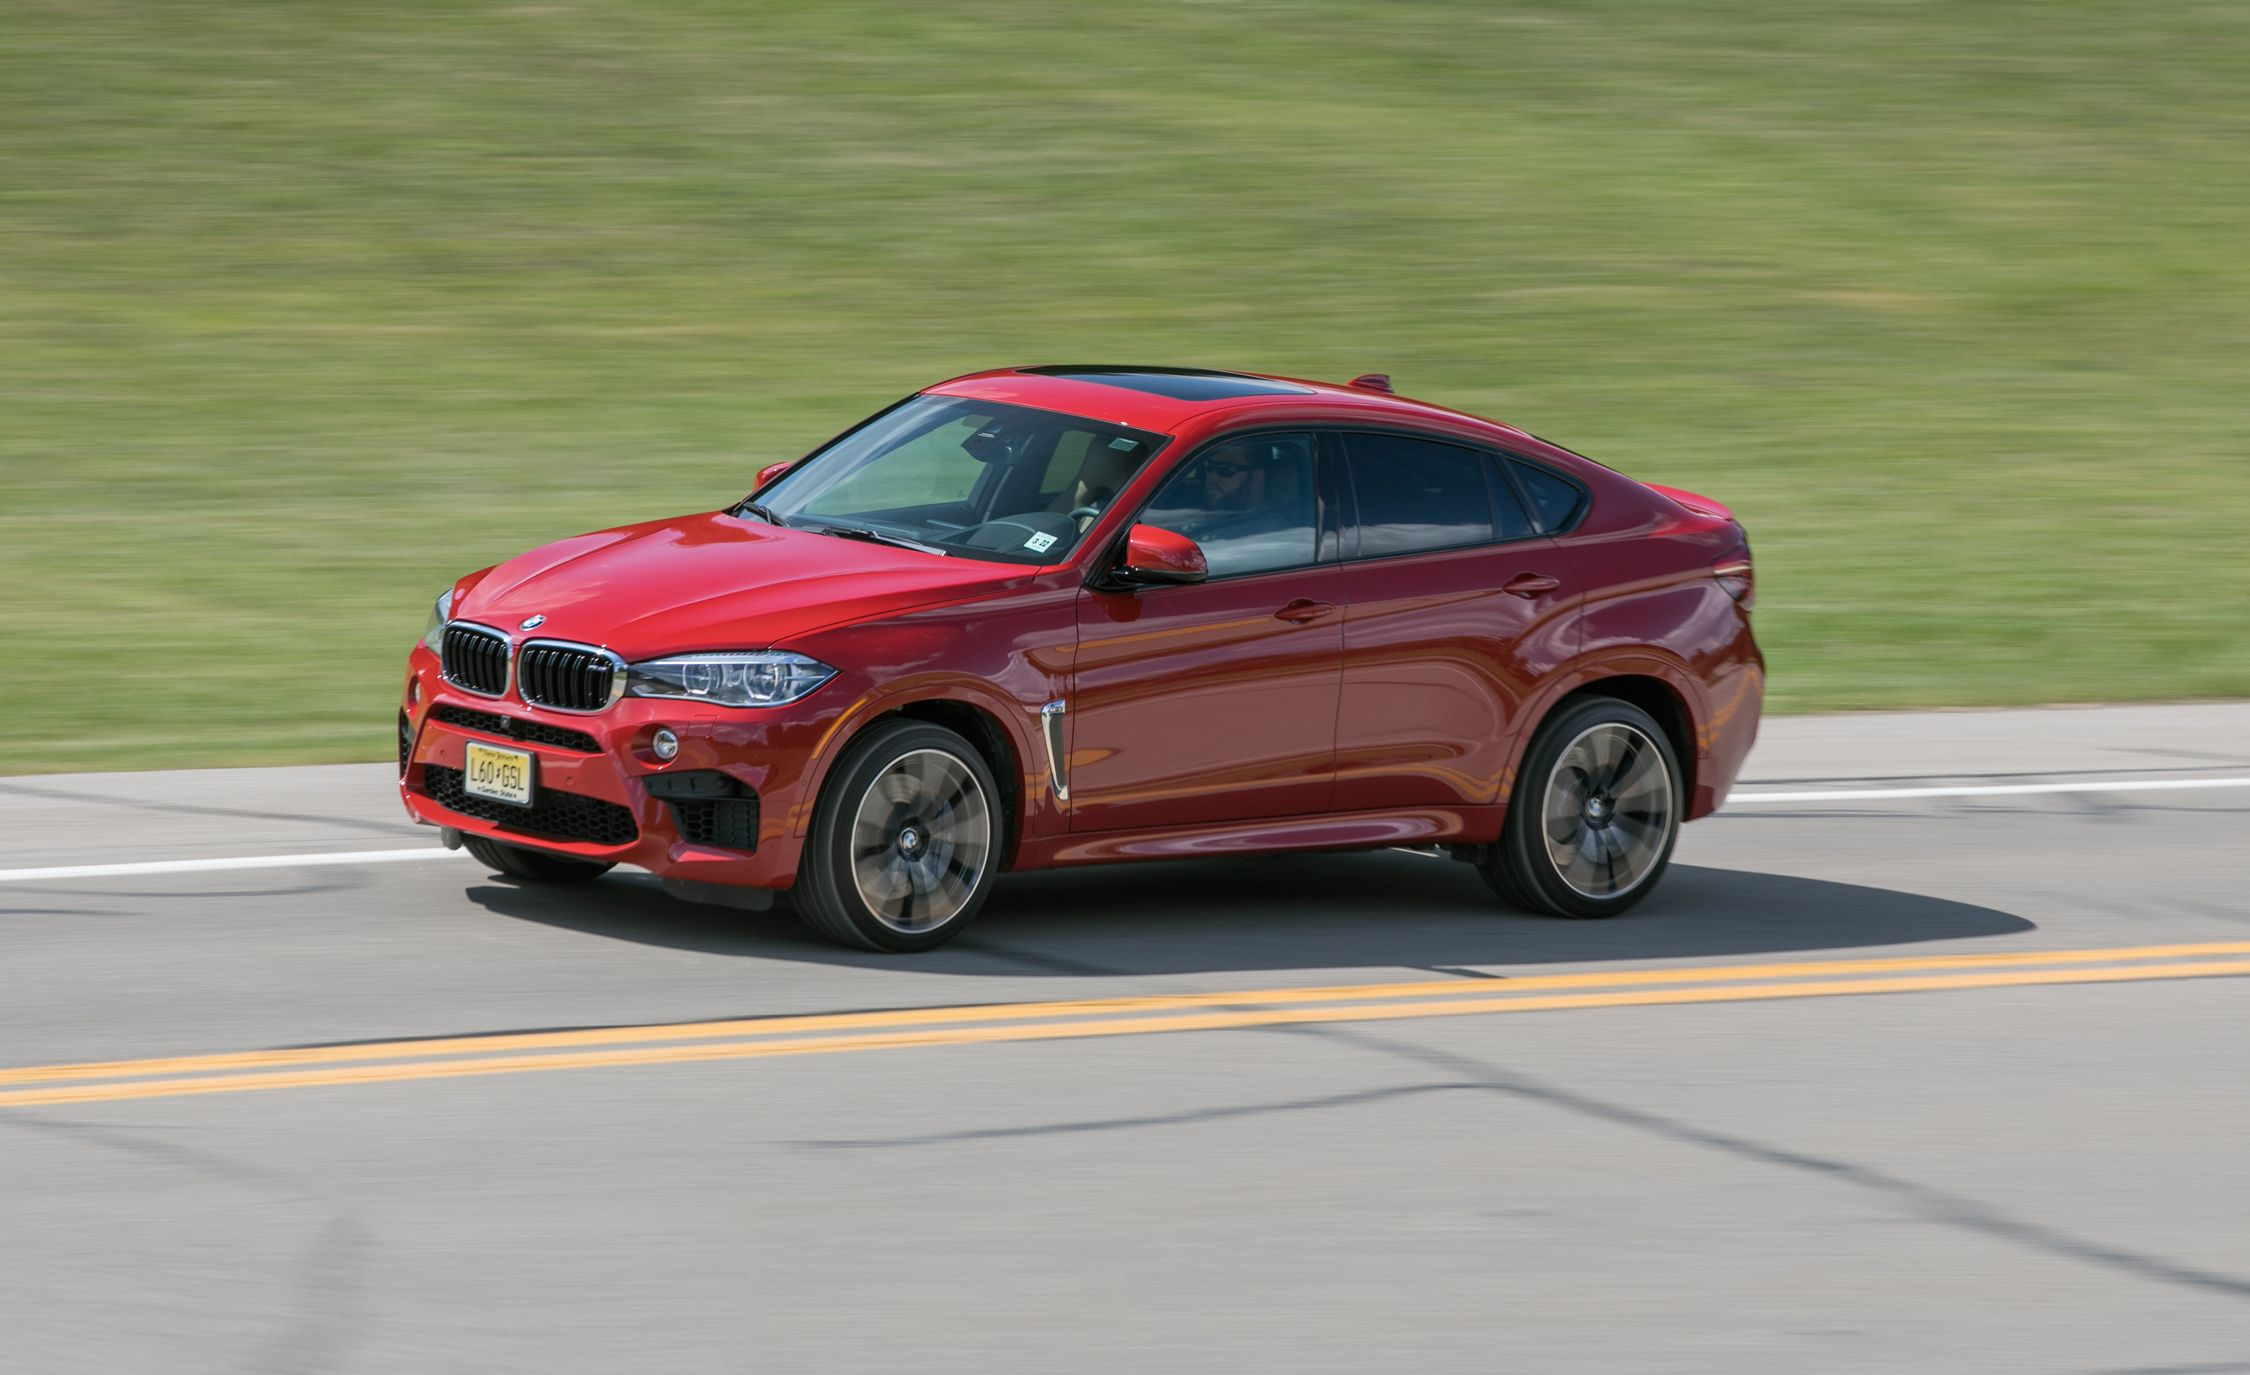 2019 Bmw X6 M Reviews Bmw X6 M Price Photos And Specs Car And